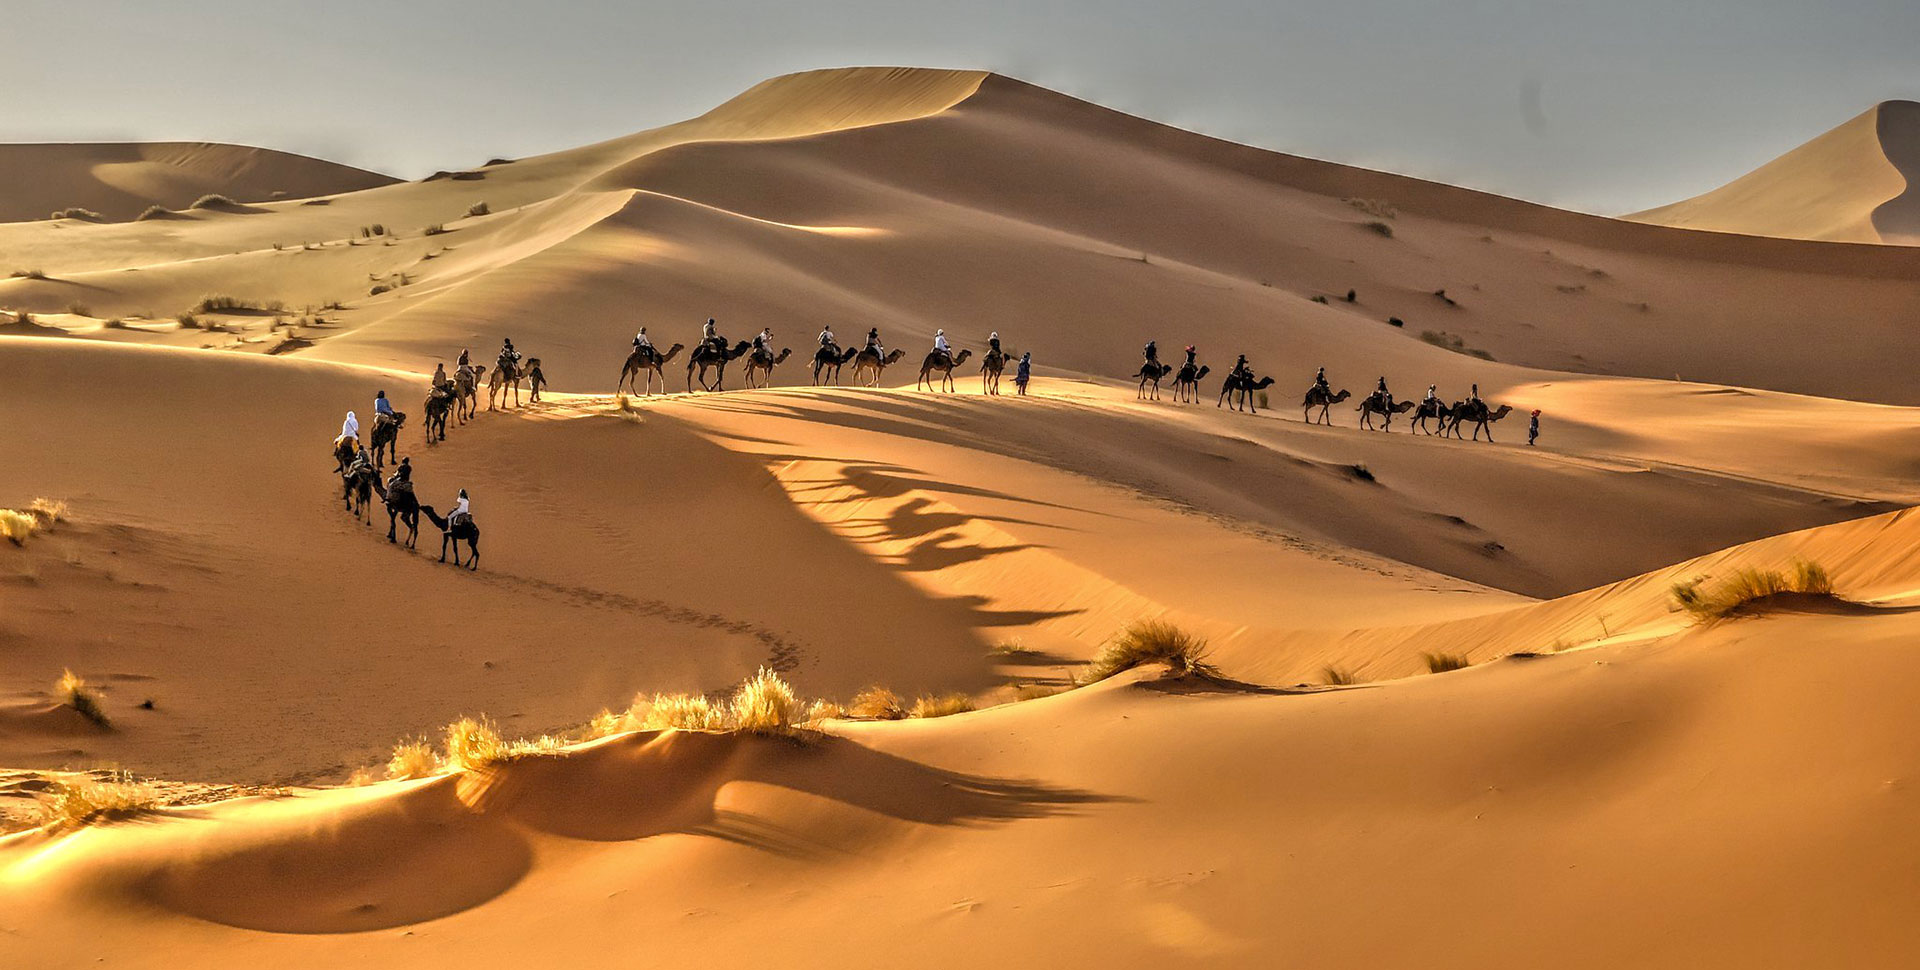 10 days exotic Morocco discovery tour from Marrakech to explore Morocco